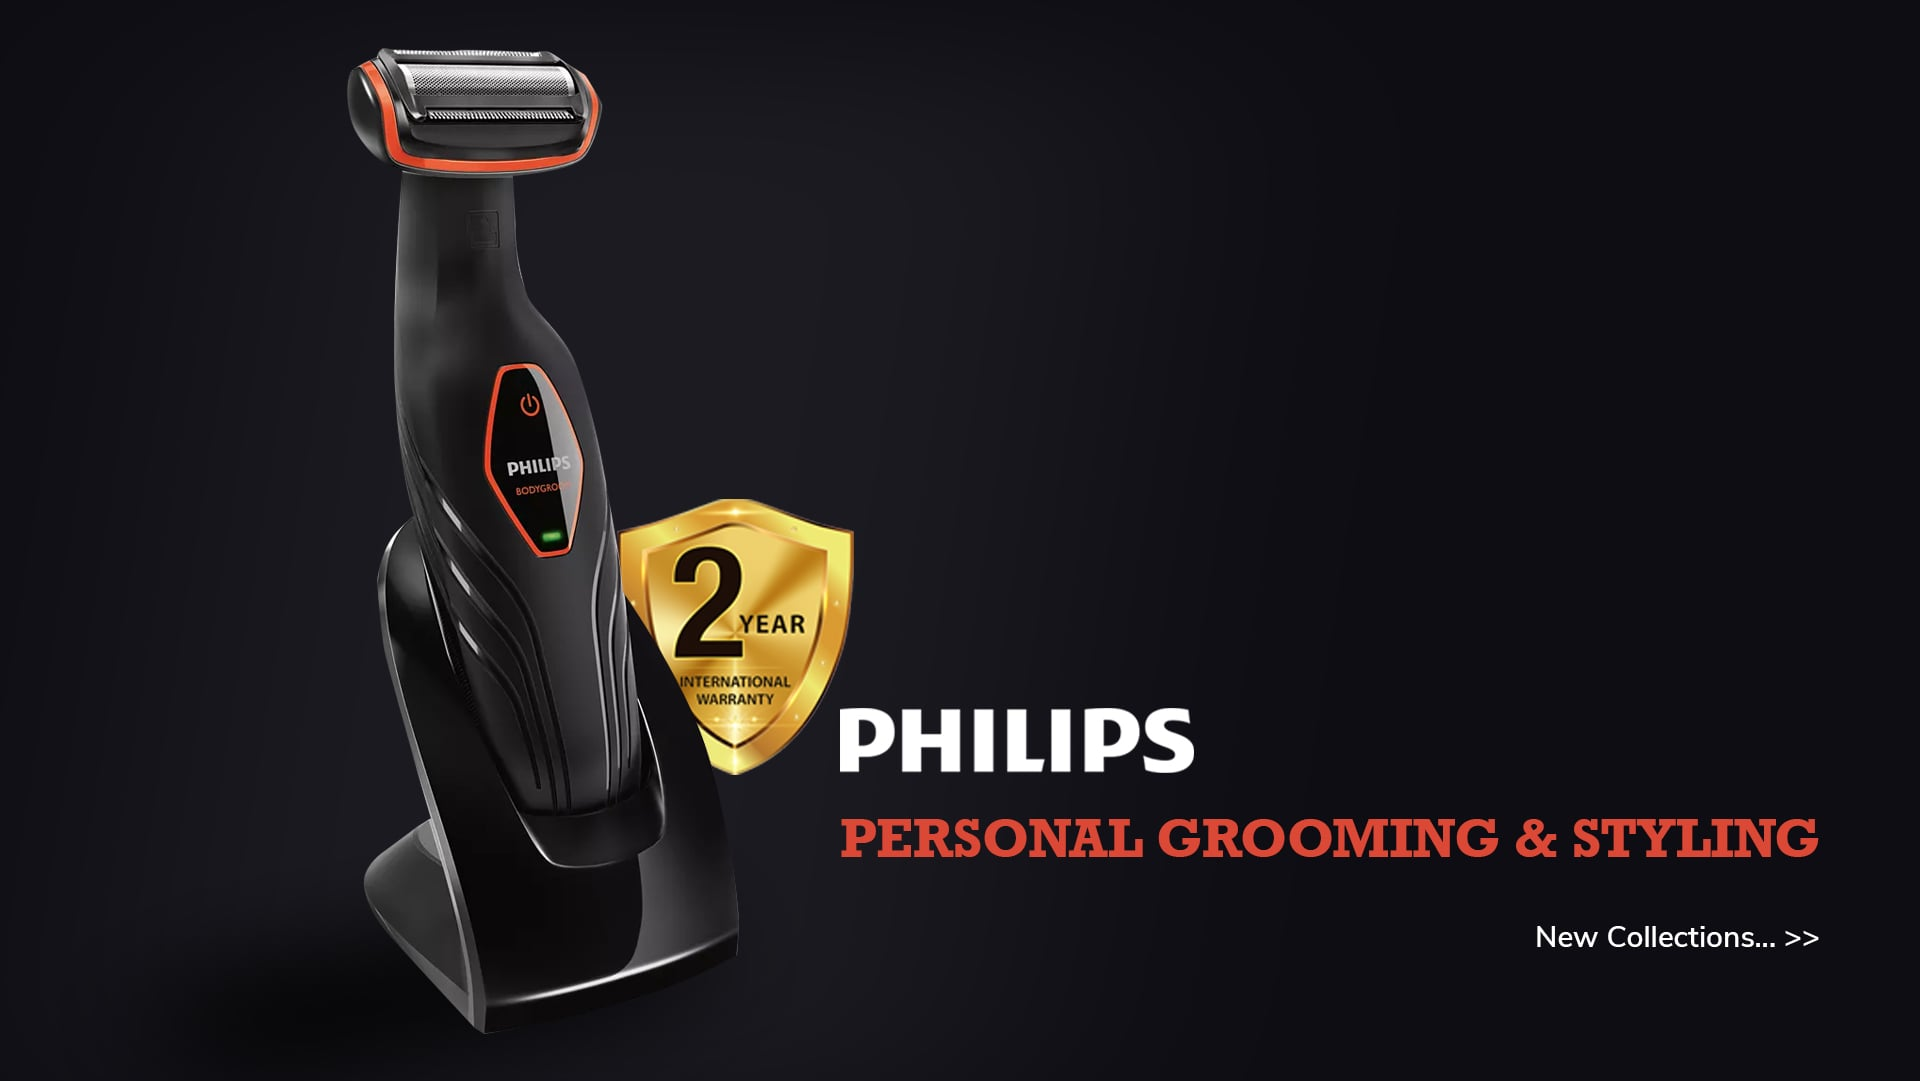 Philips personal care products online uae